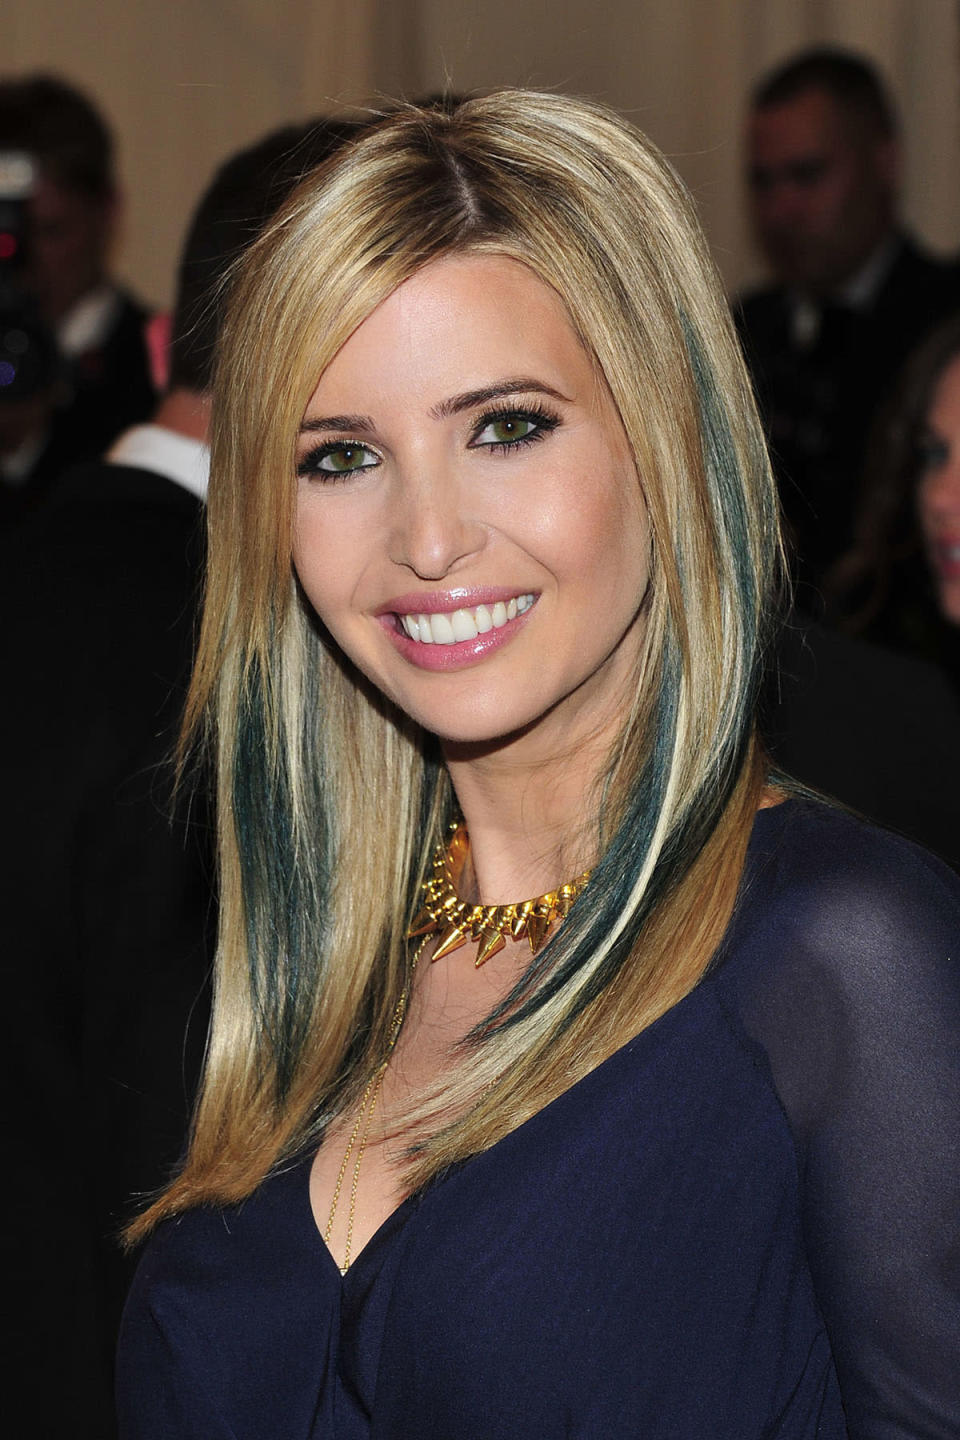 <p>Ivanka brings back the contacts and tries out striking teal hair extensions for the Met Gala. (Photo: AP Images) </p>